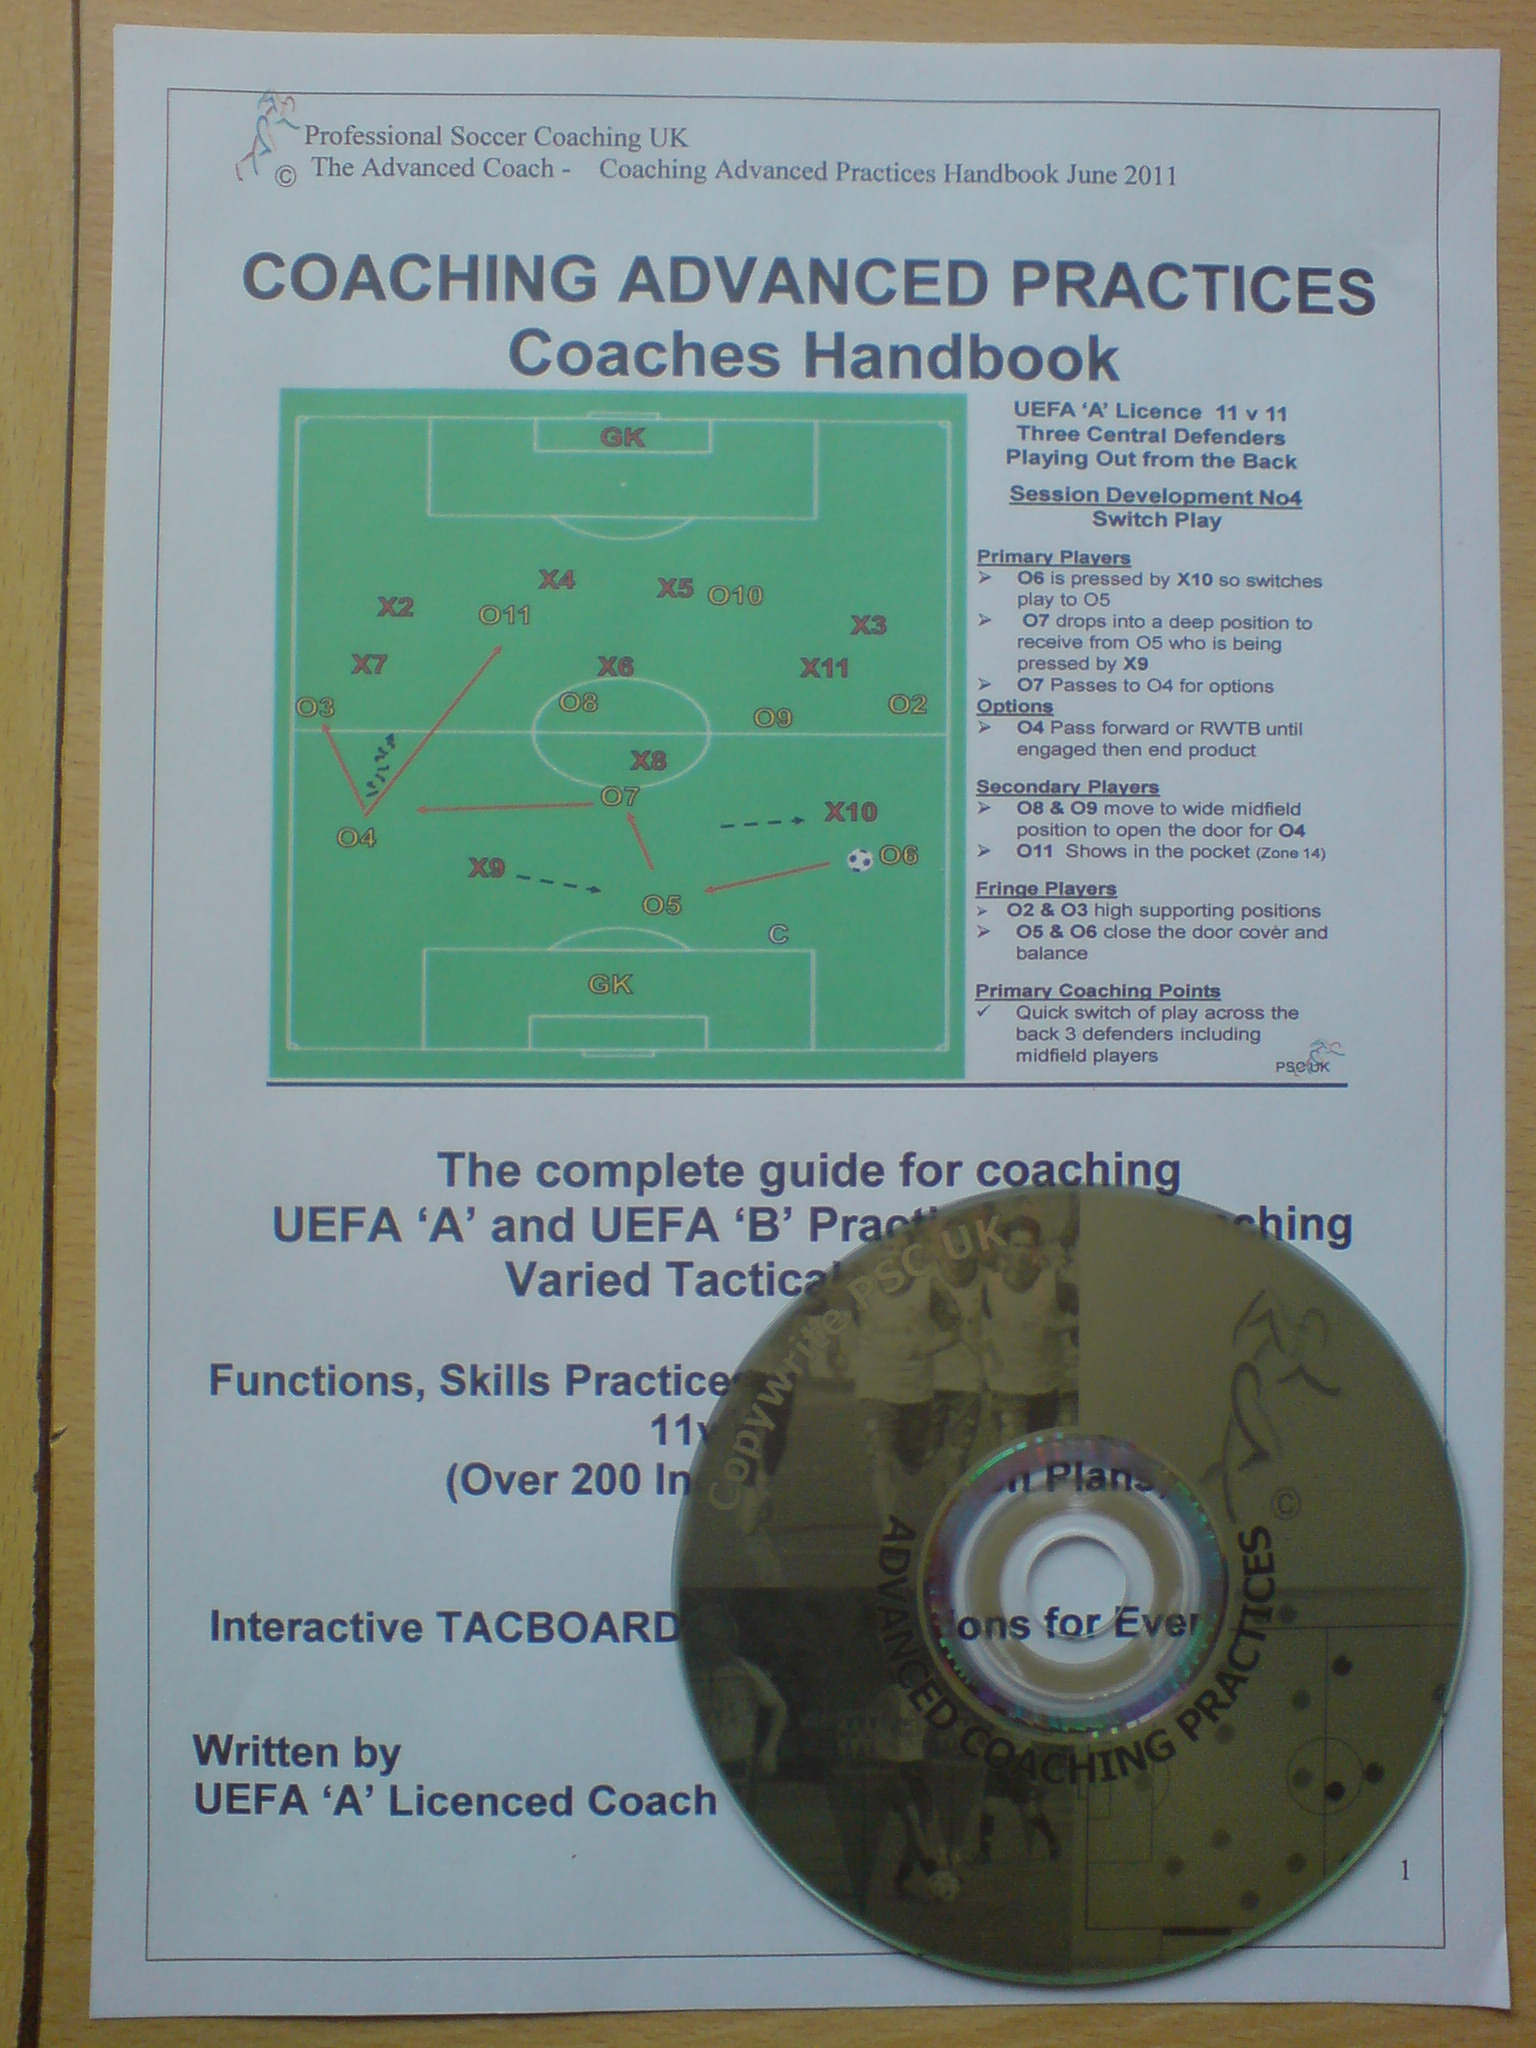 www prosoccercoachuk com professional soccer coaching uk uefa a rh prosoccercoachuk com uefa a license coaching manual pdf uefa pro license manual